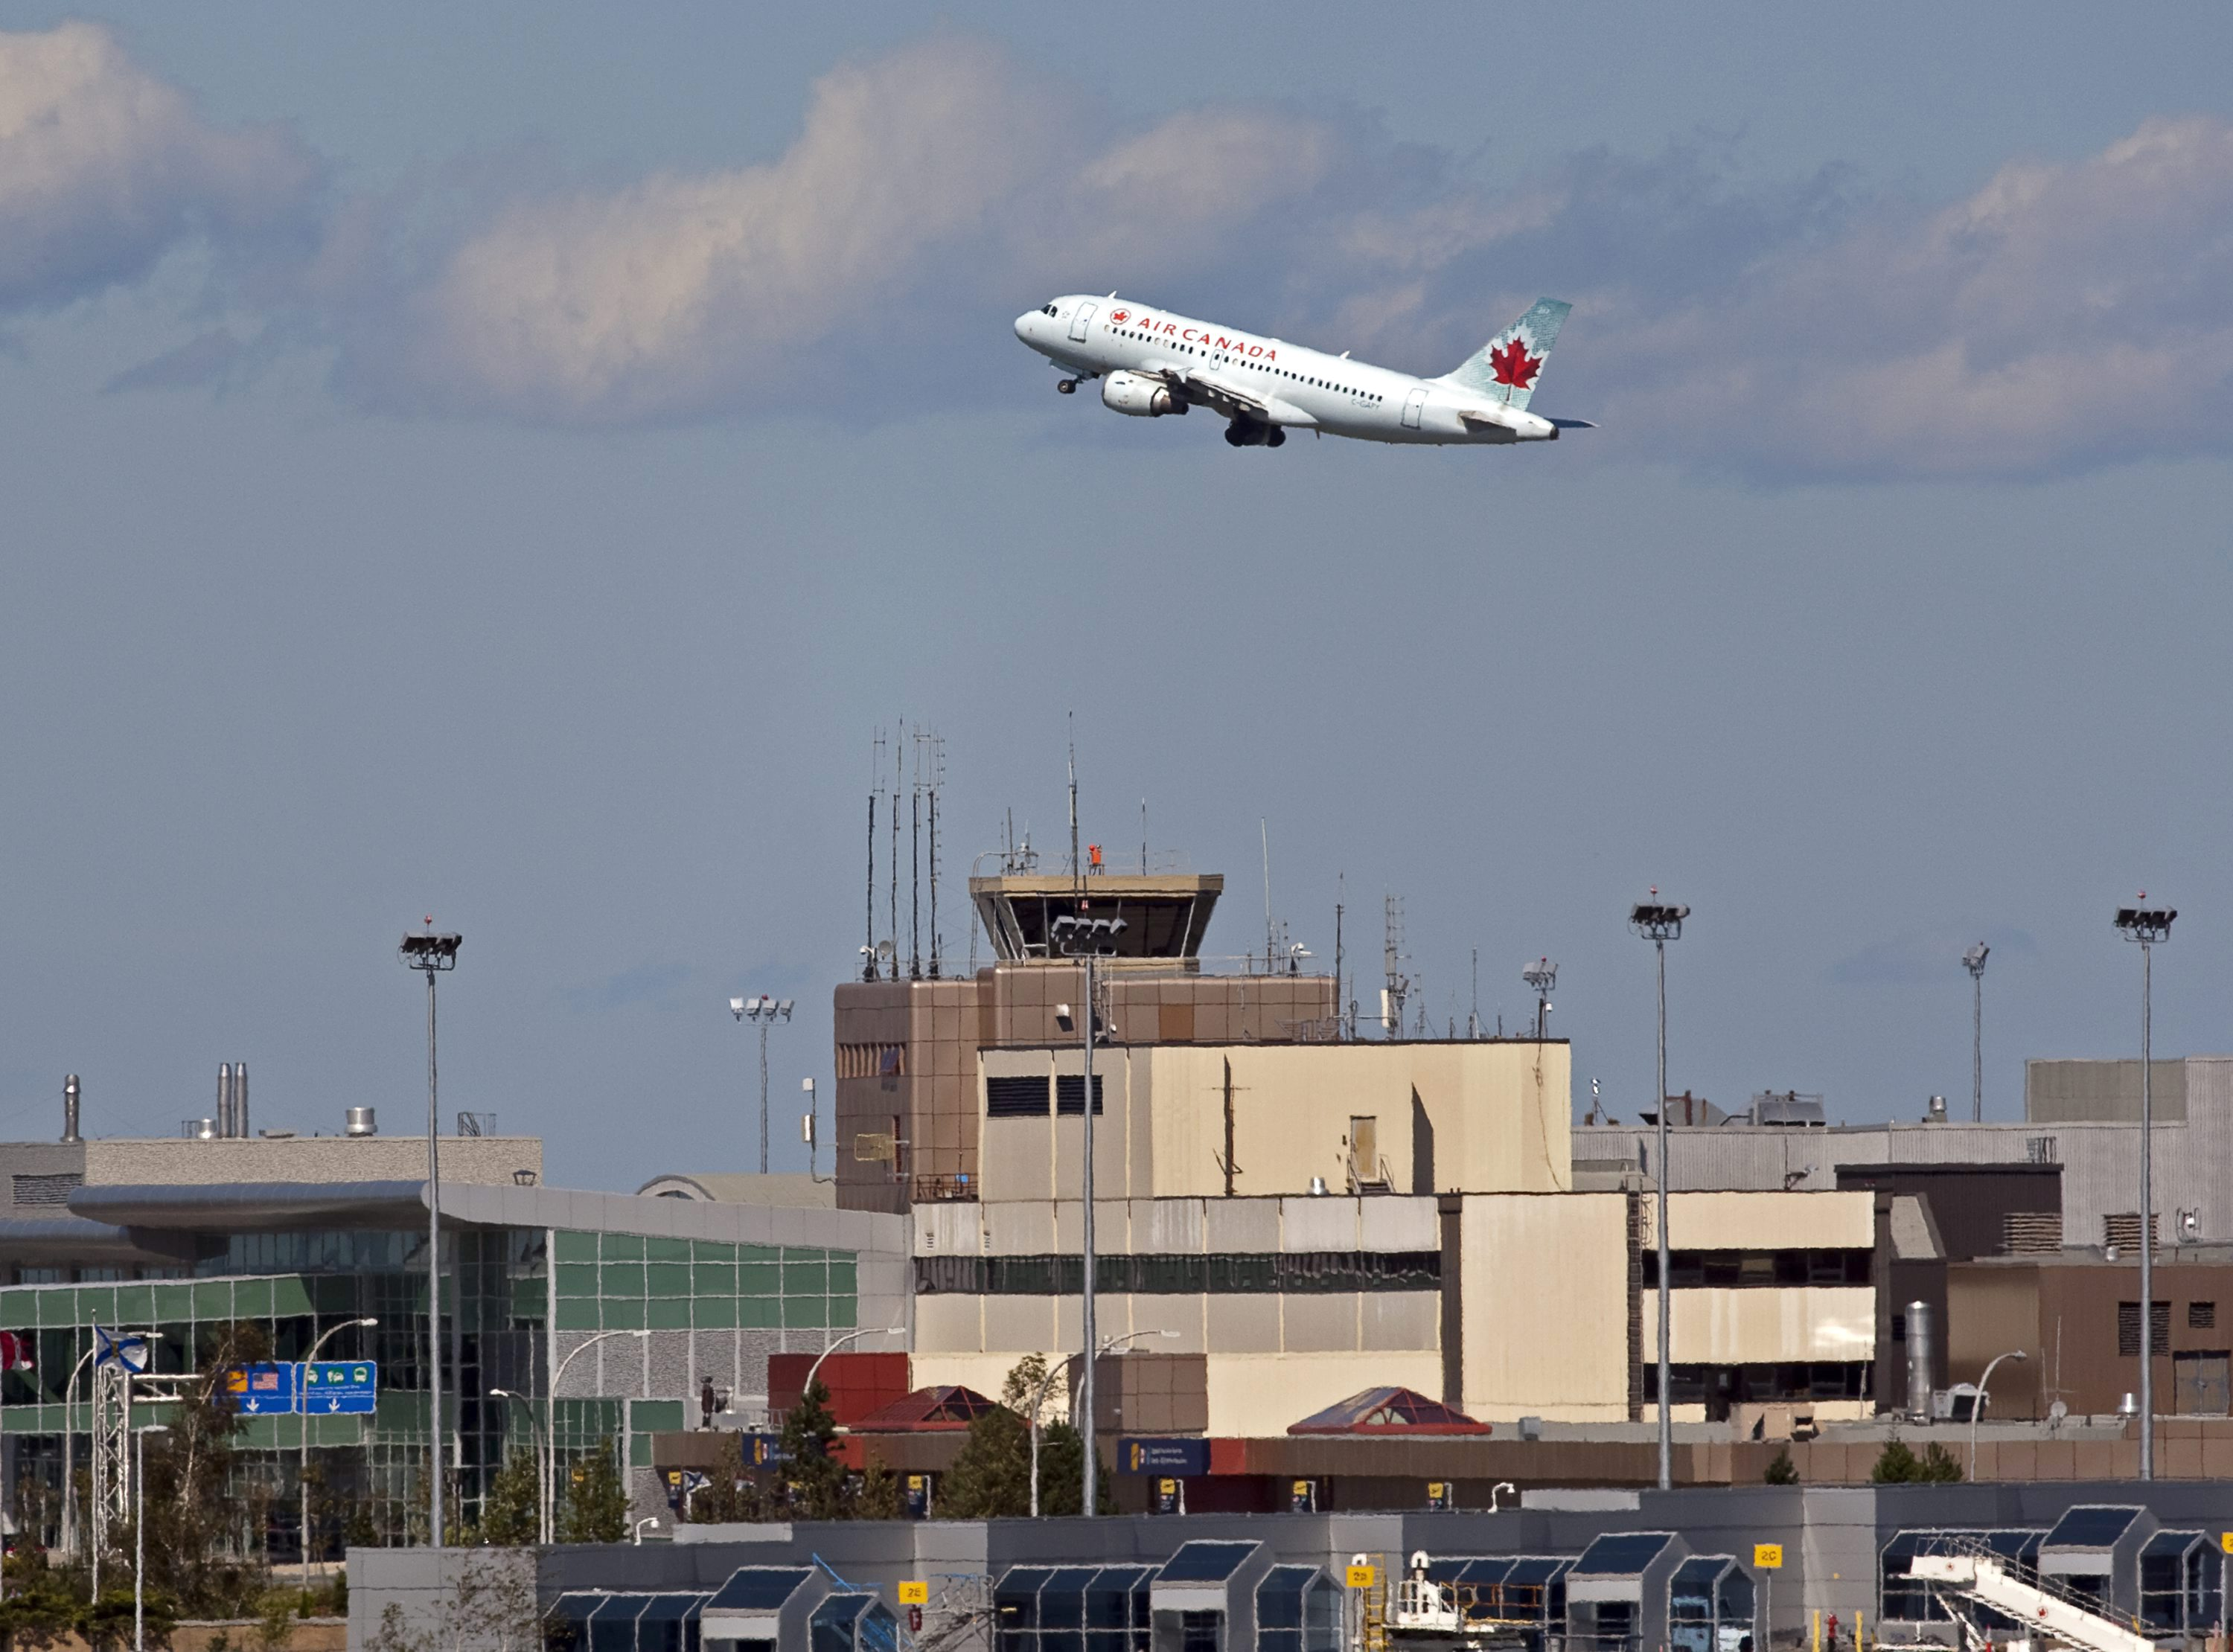 An Air Canada jet takes off over the terminal at the Halifax, Nova Scotia airport on September 12, 2011.